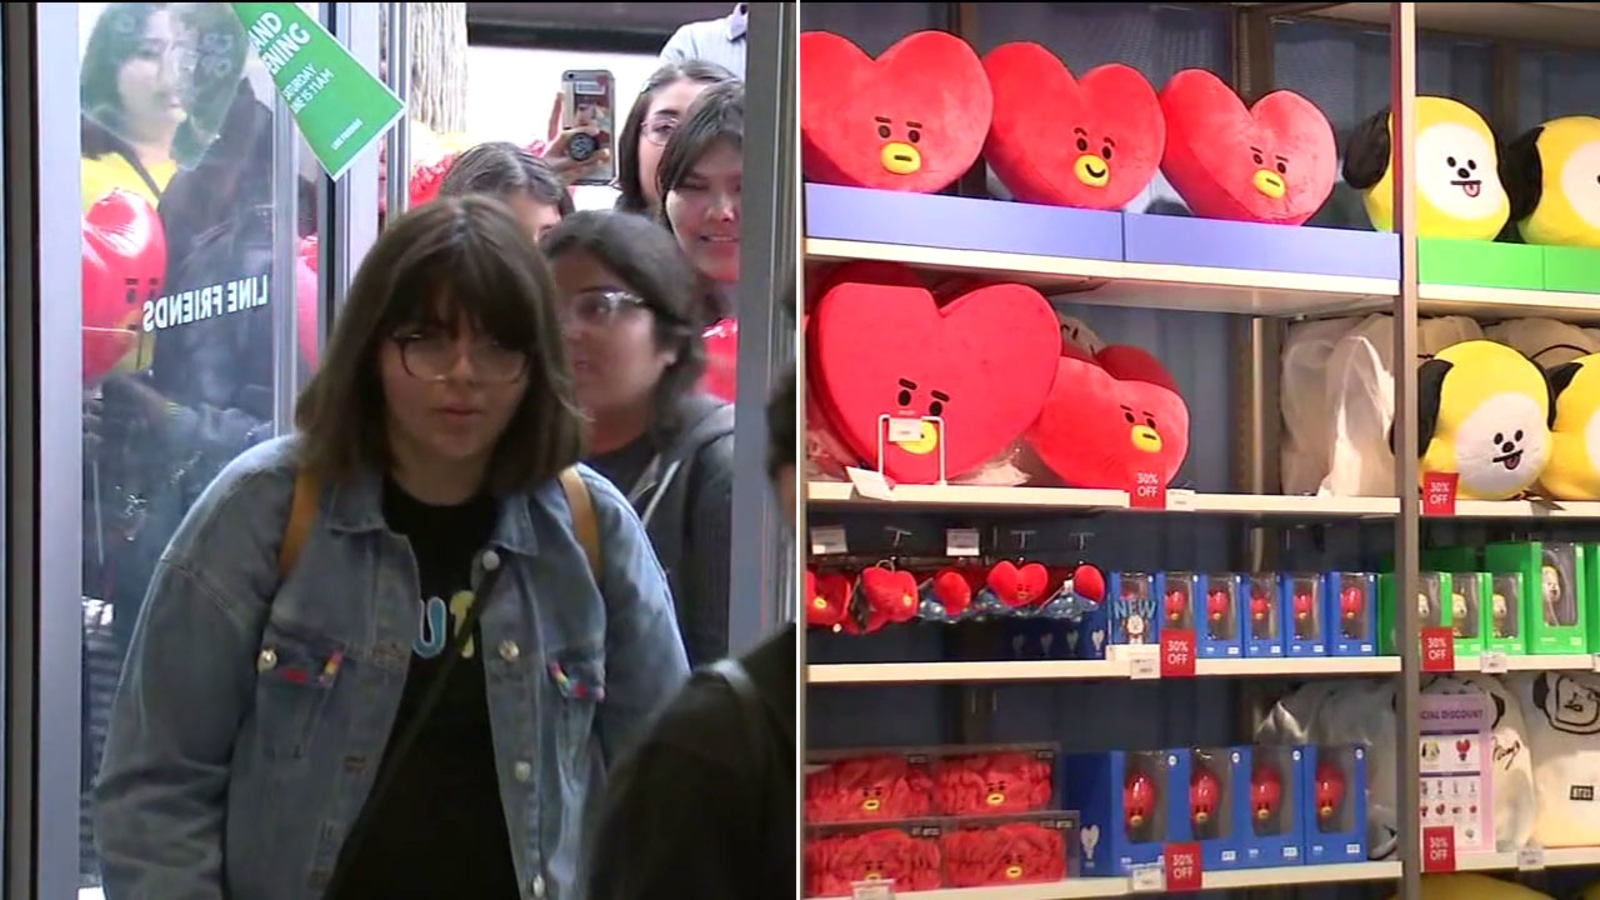 Fans line up in Hollywood for BTS merchandise